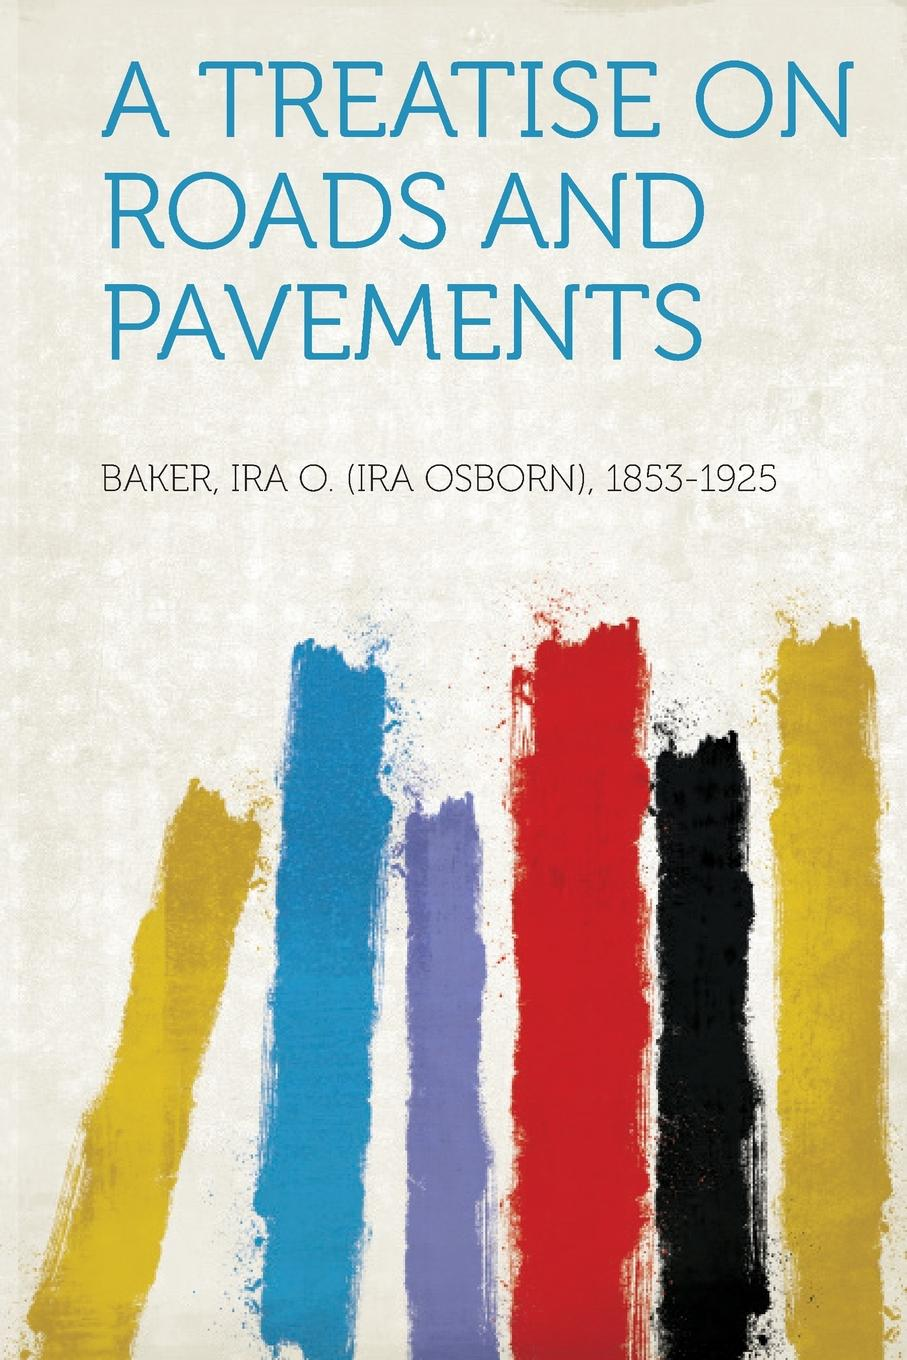 Baker Ira O. (Ira Osborn) 1853-1925 A Treatise on Roads and Pavements